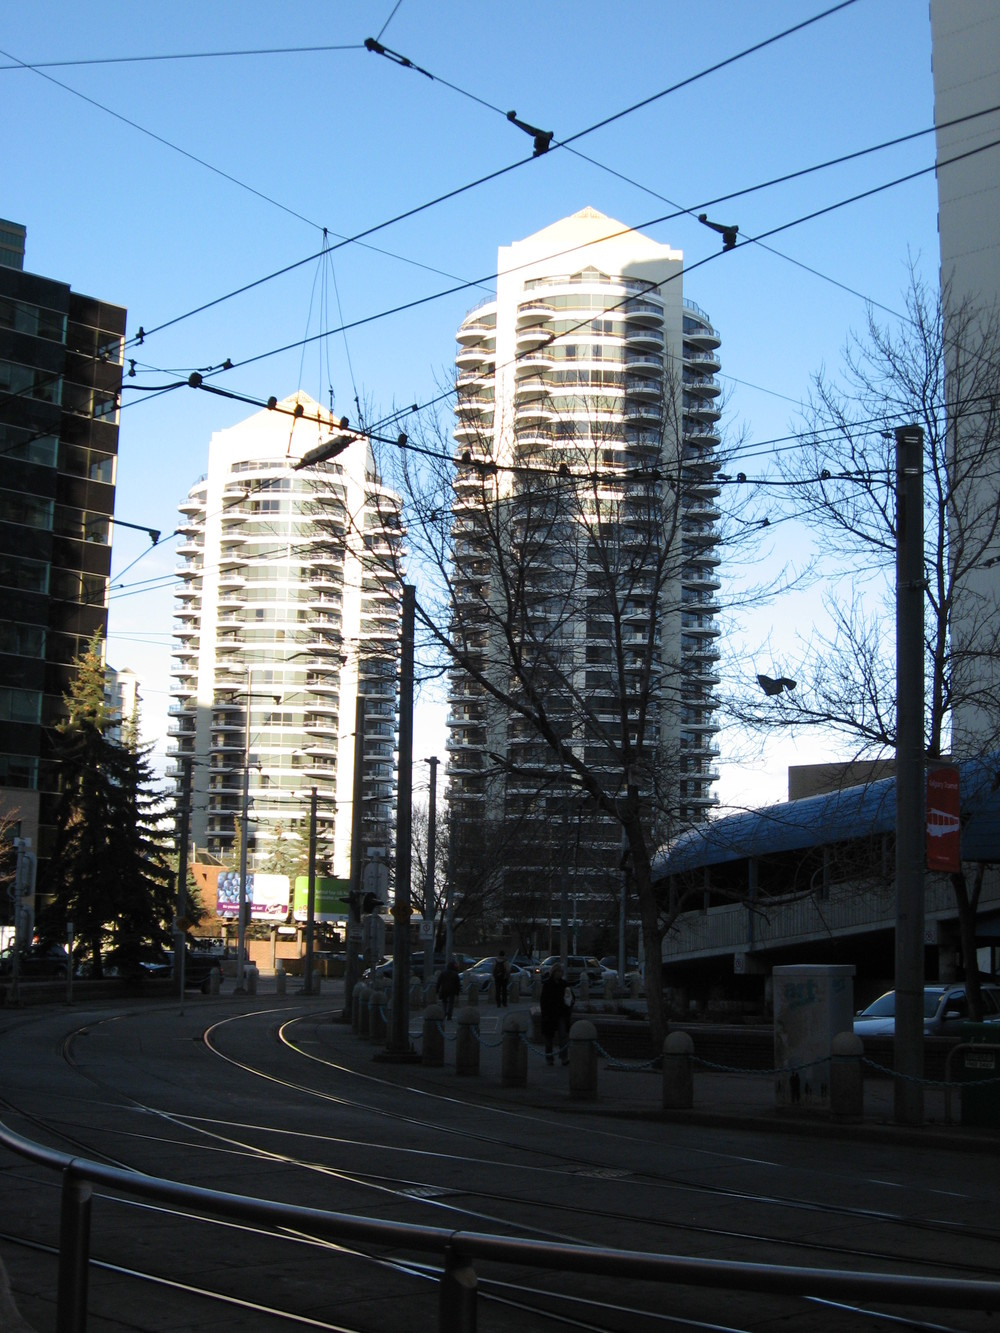 Even on a bright day, office and condo towers cast shadows on the street that make it look dark and unattractive.  Railway tracks and barriers make it difficult to walk across the street.